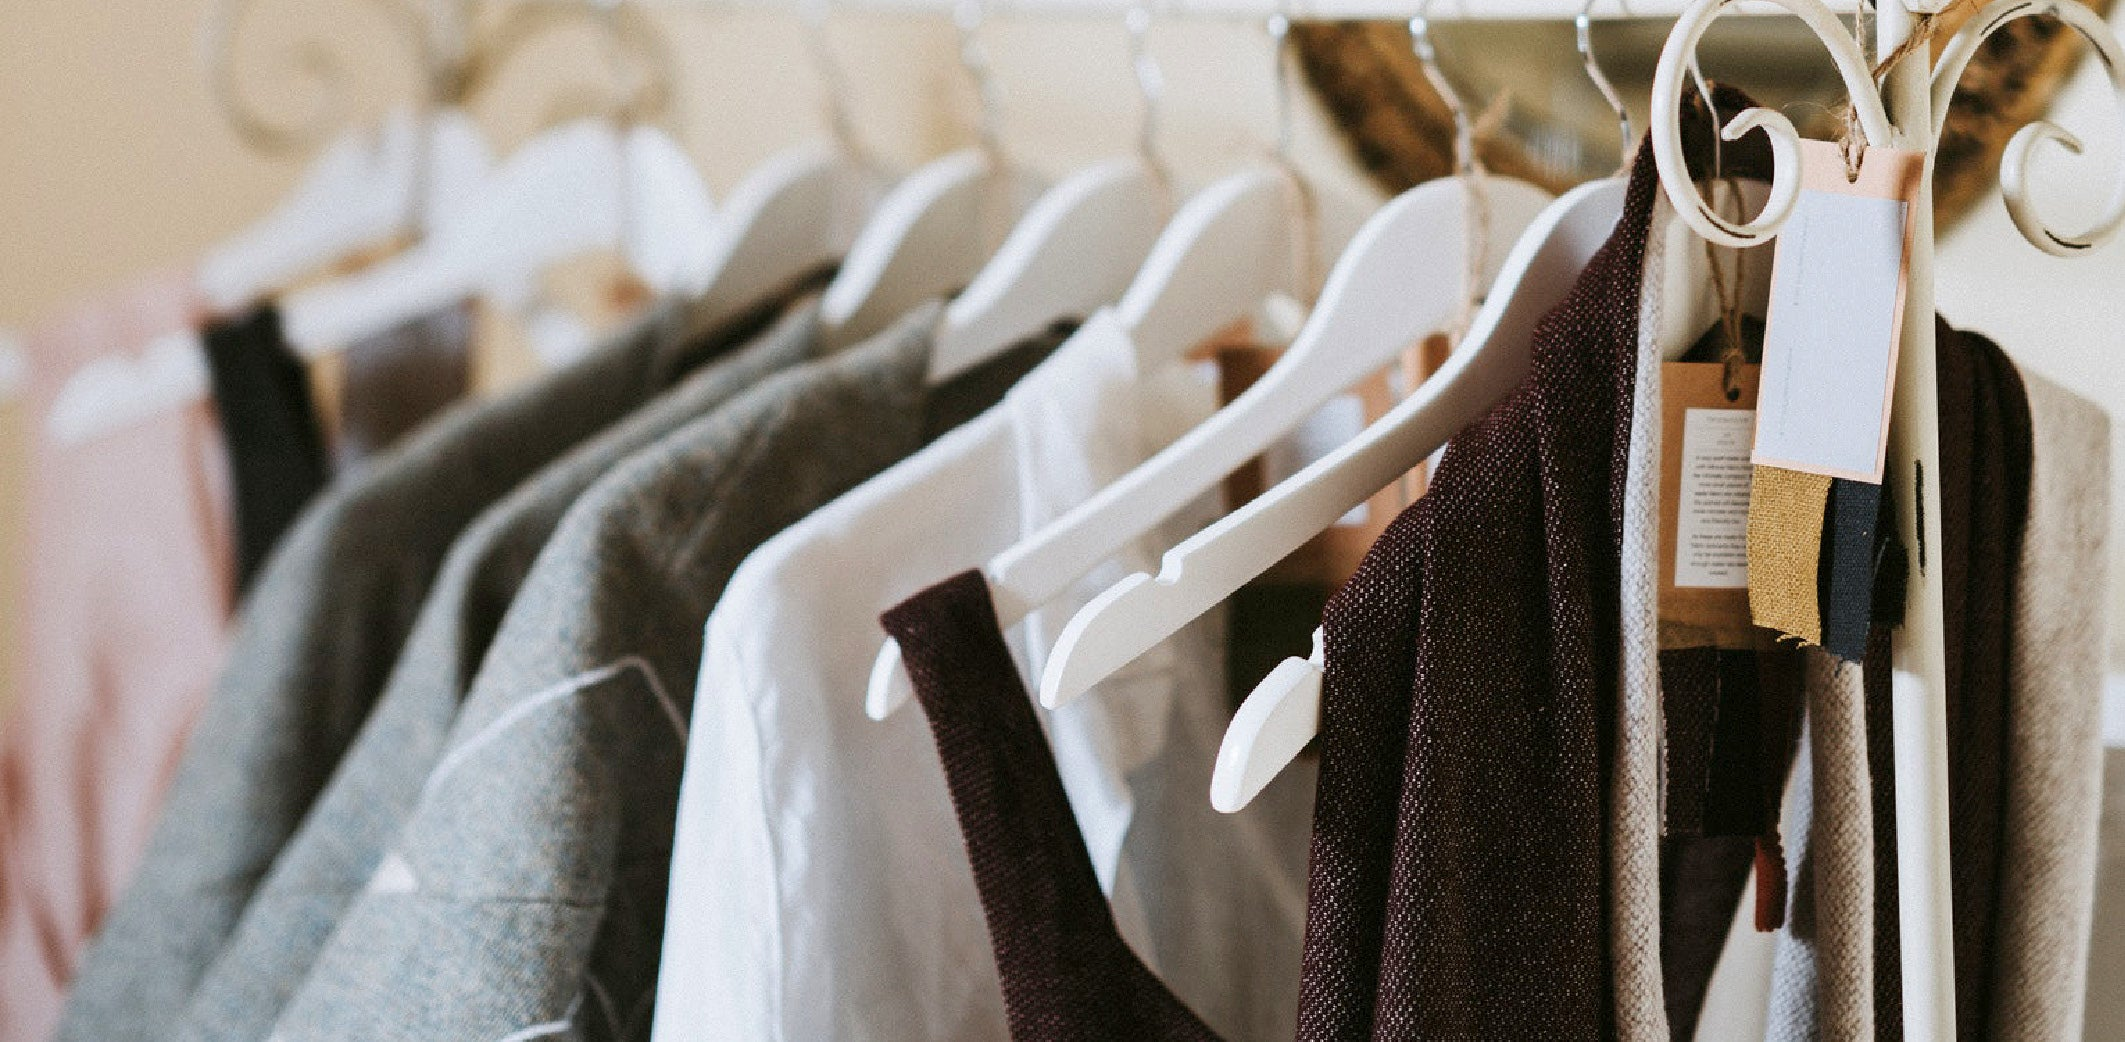 Slow-Fashion  How to Build a Minimalist Eco-Fashion Capsule Wardrobe